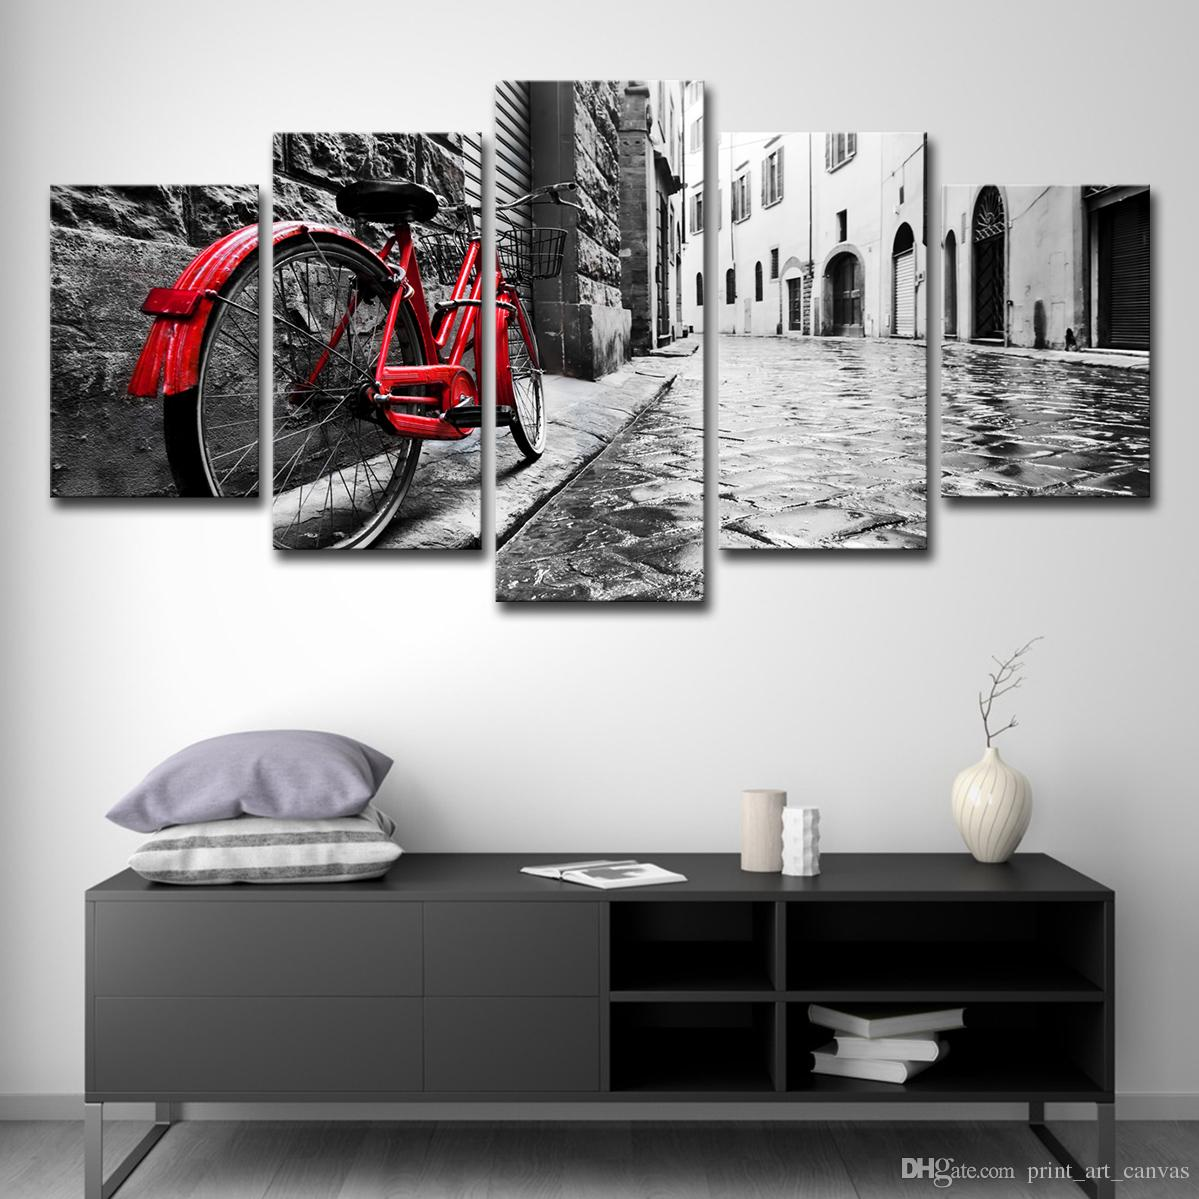 Quadro moderno dipinto su tela Quadro su tela Picture Decor 5 Panel Red  Bicycle Lean Against Wall Stree HD Print Poster